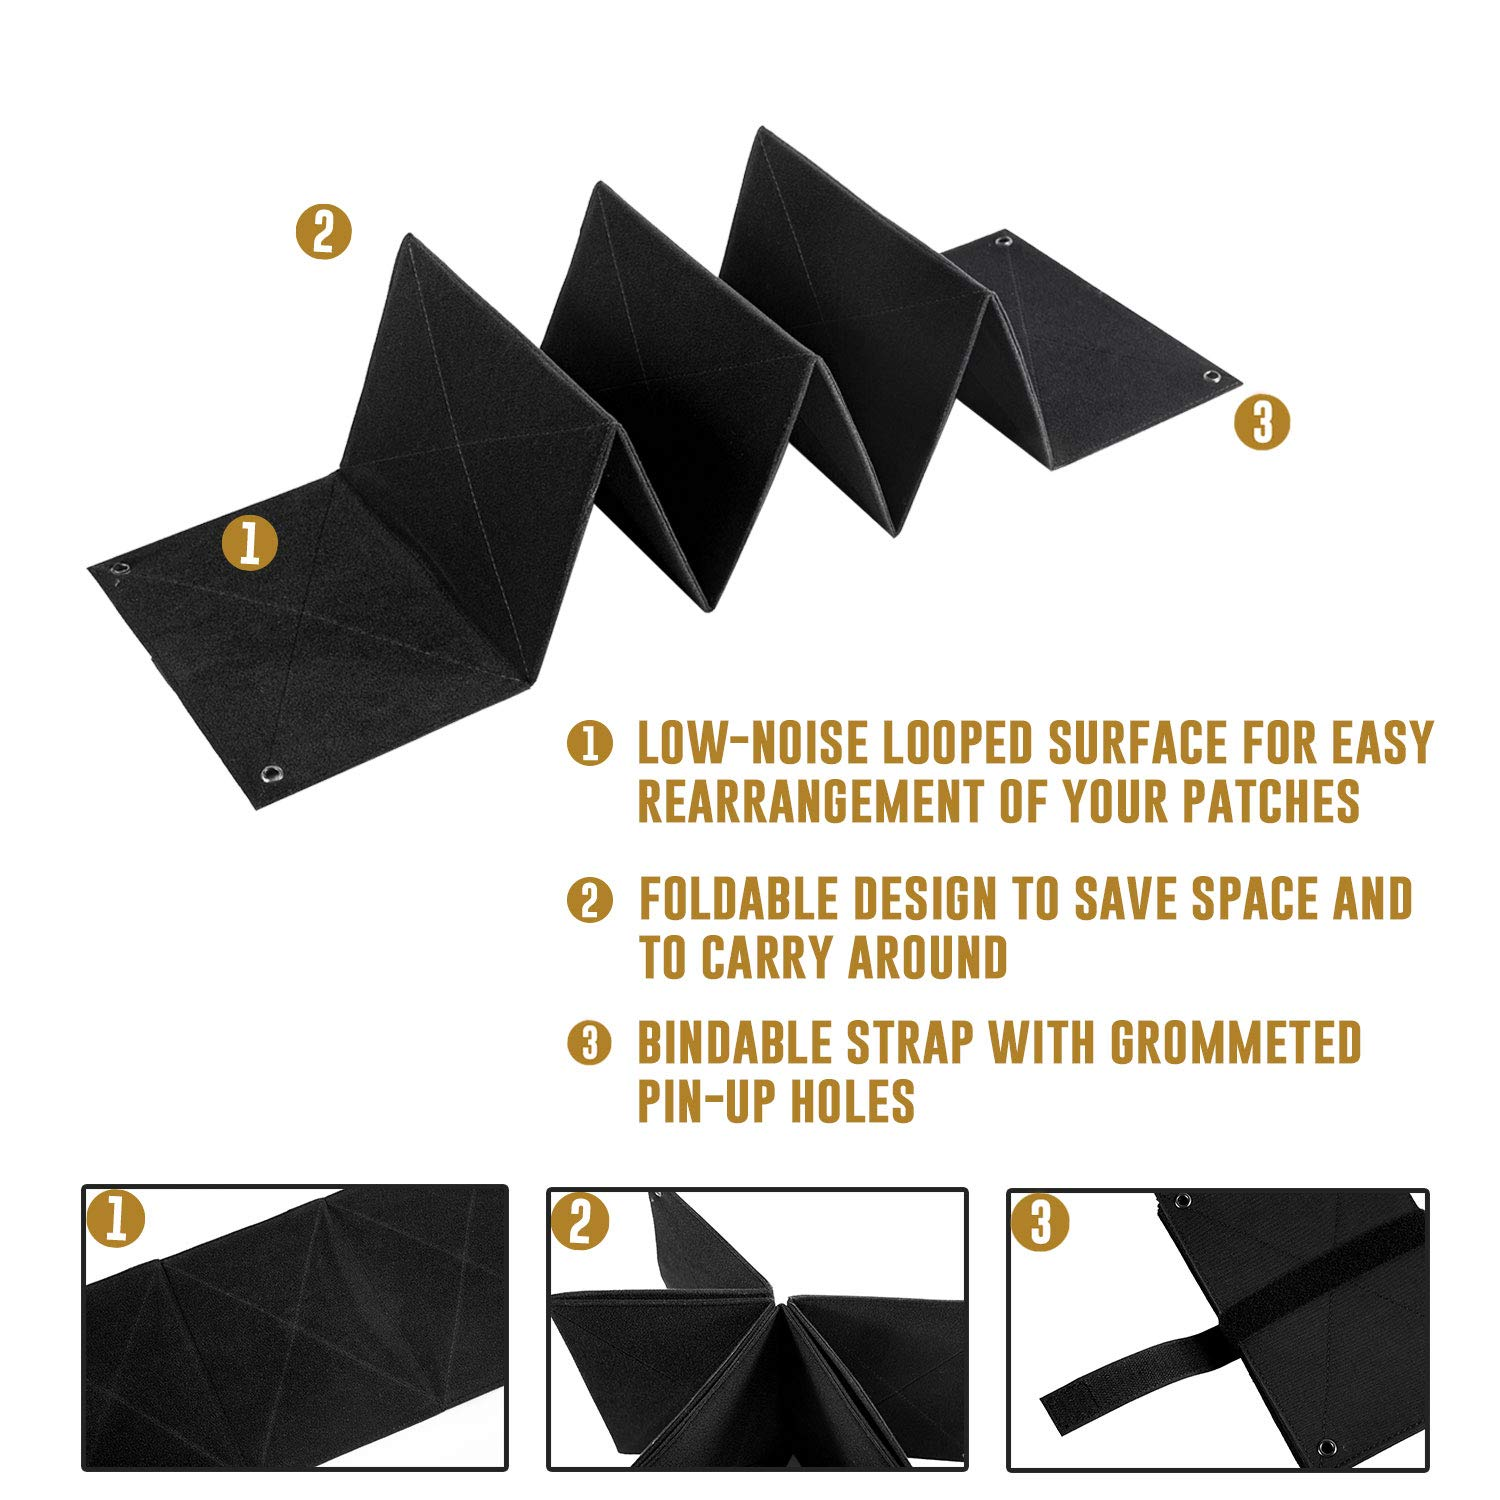 Foldable Portable Patches Panel Holder Board OneTigris Patch Organizer Booklet Black